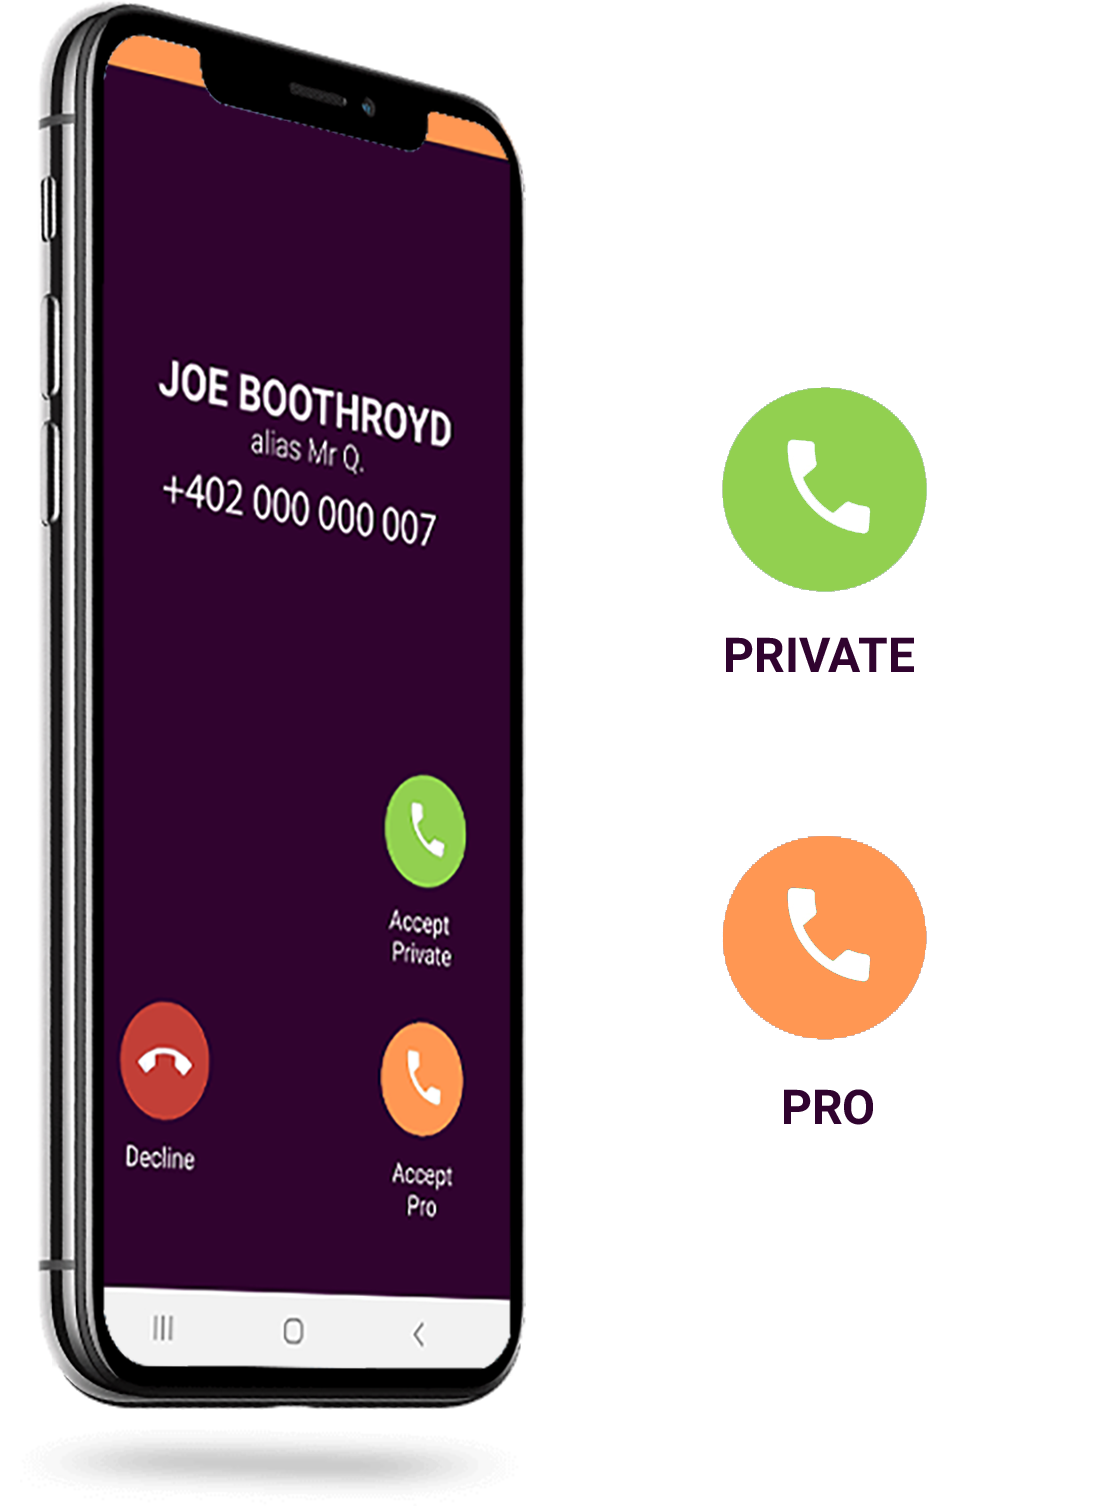 Take private and professional calls, only professional calls are pushed to the business app